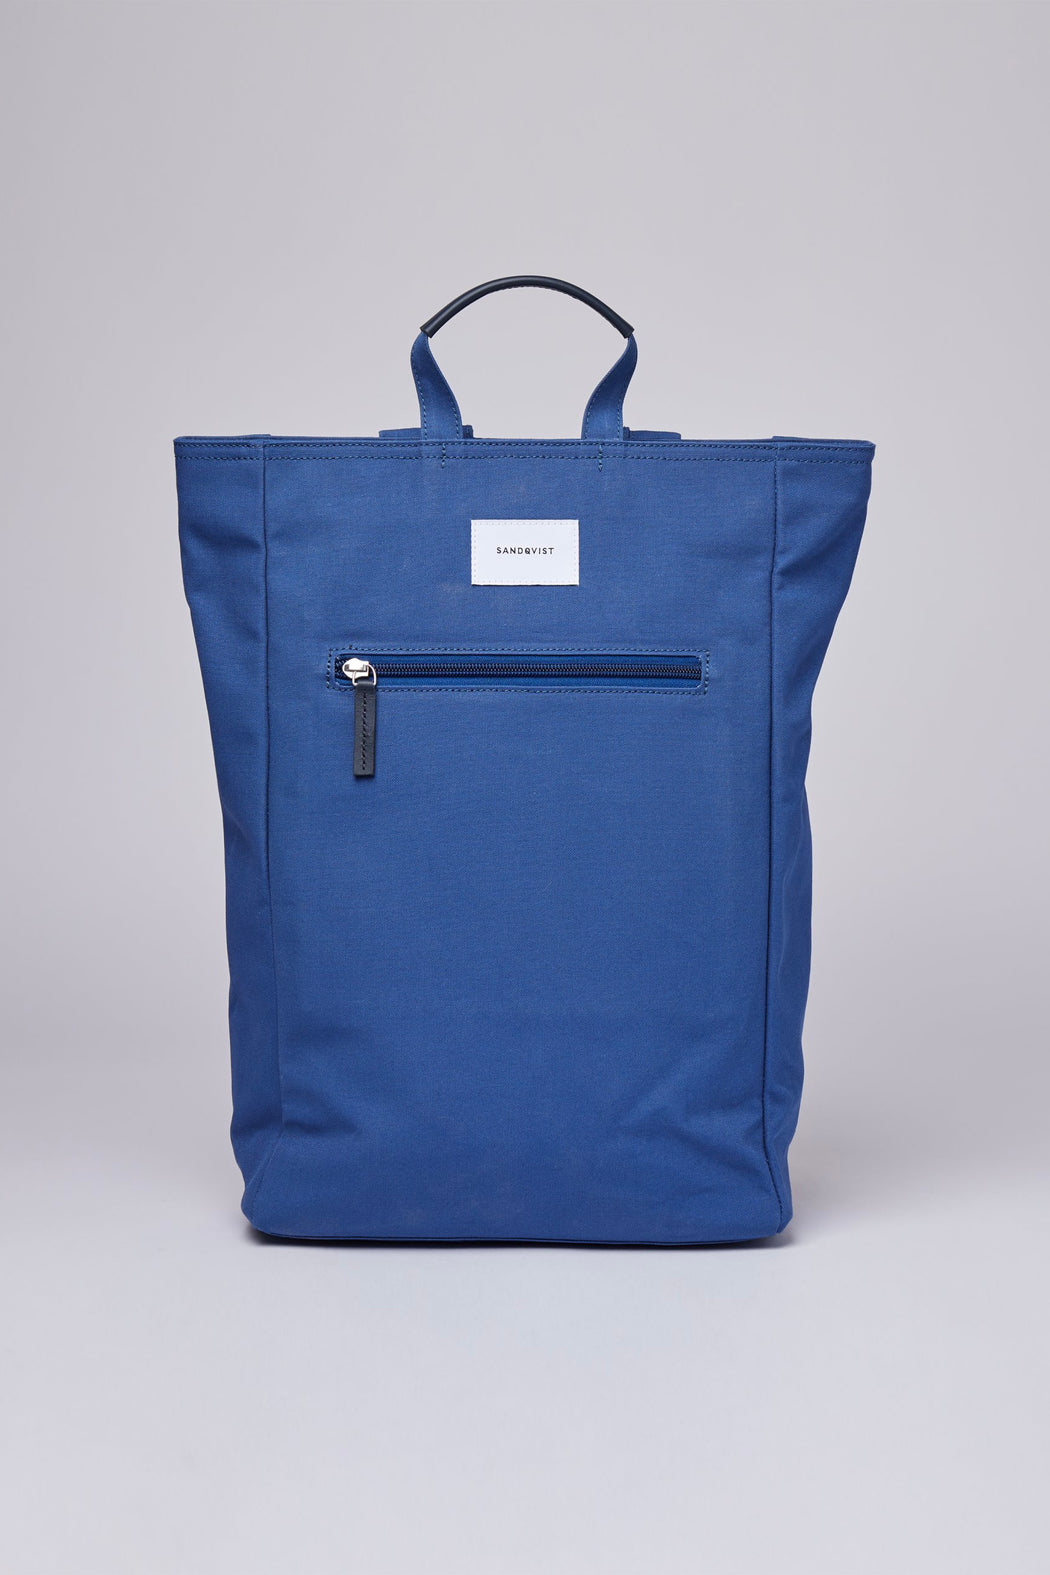 TONY Backpack/Tote bag blue with blue leather